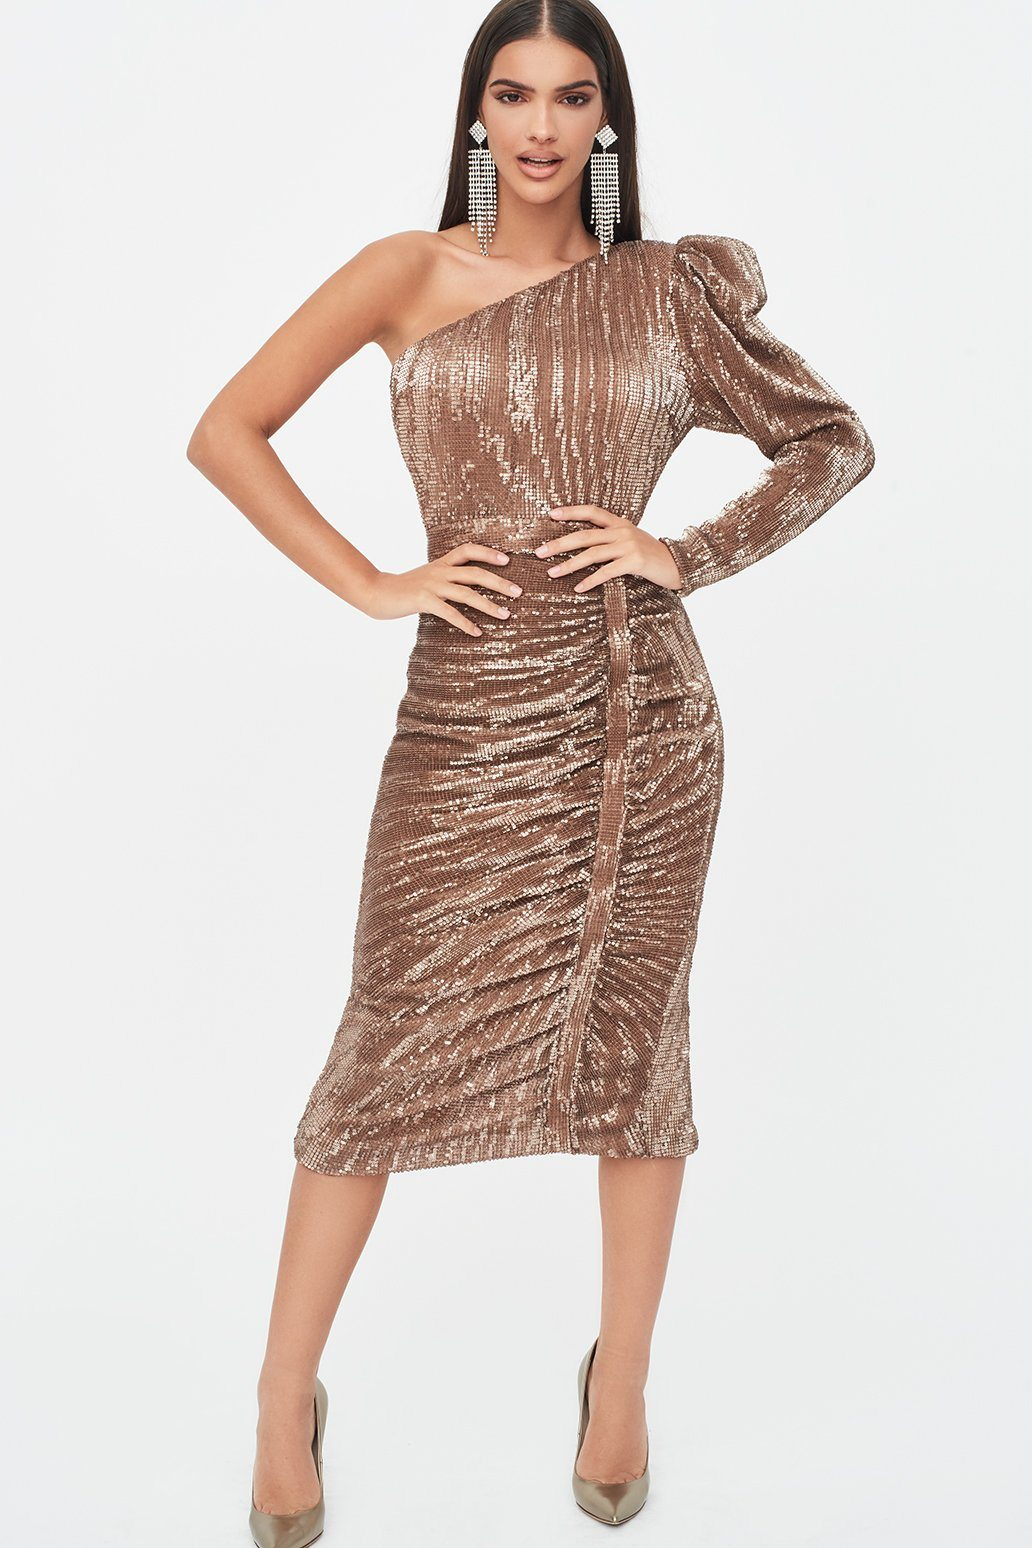 Lavish Alice Rosie Connolly Puff One Shoulder Sequin Midi Dress in Gold